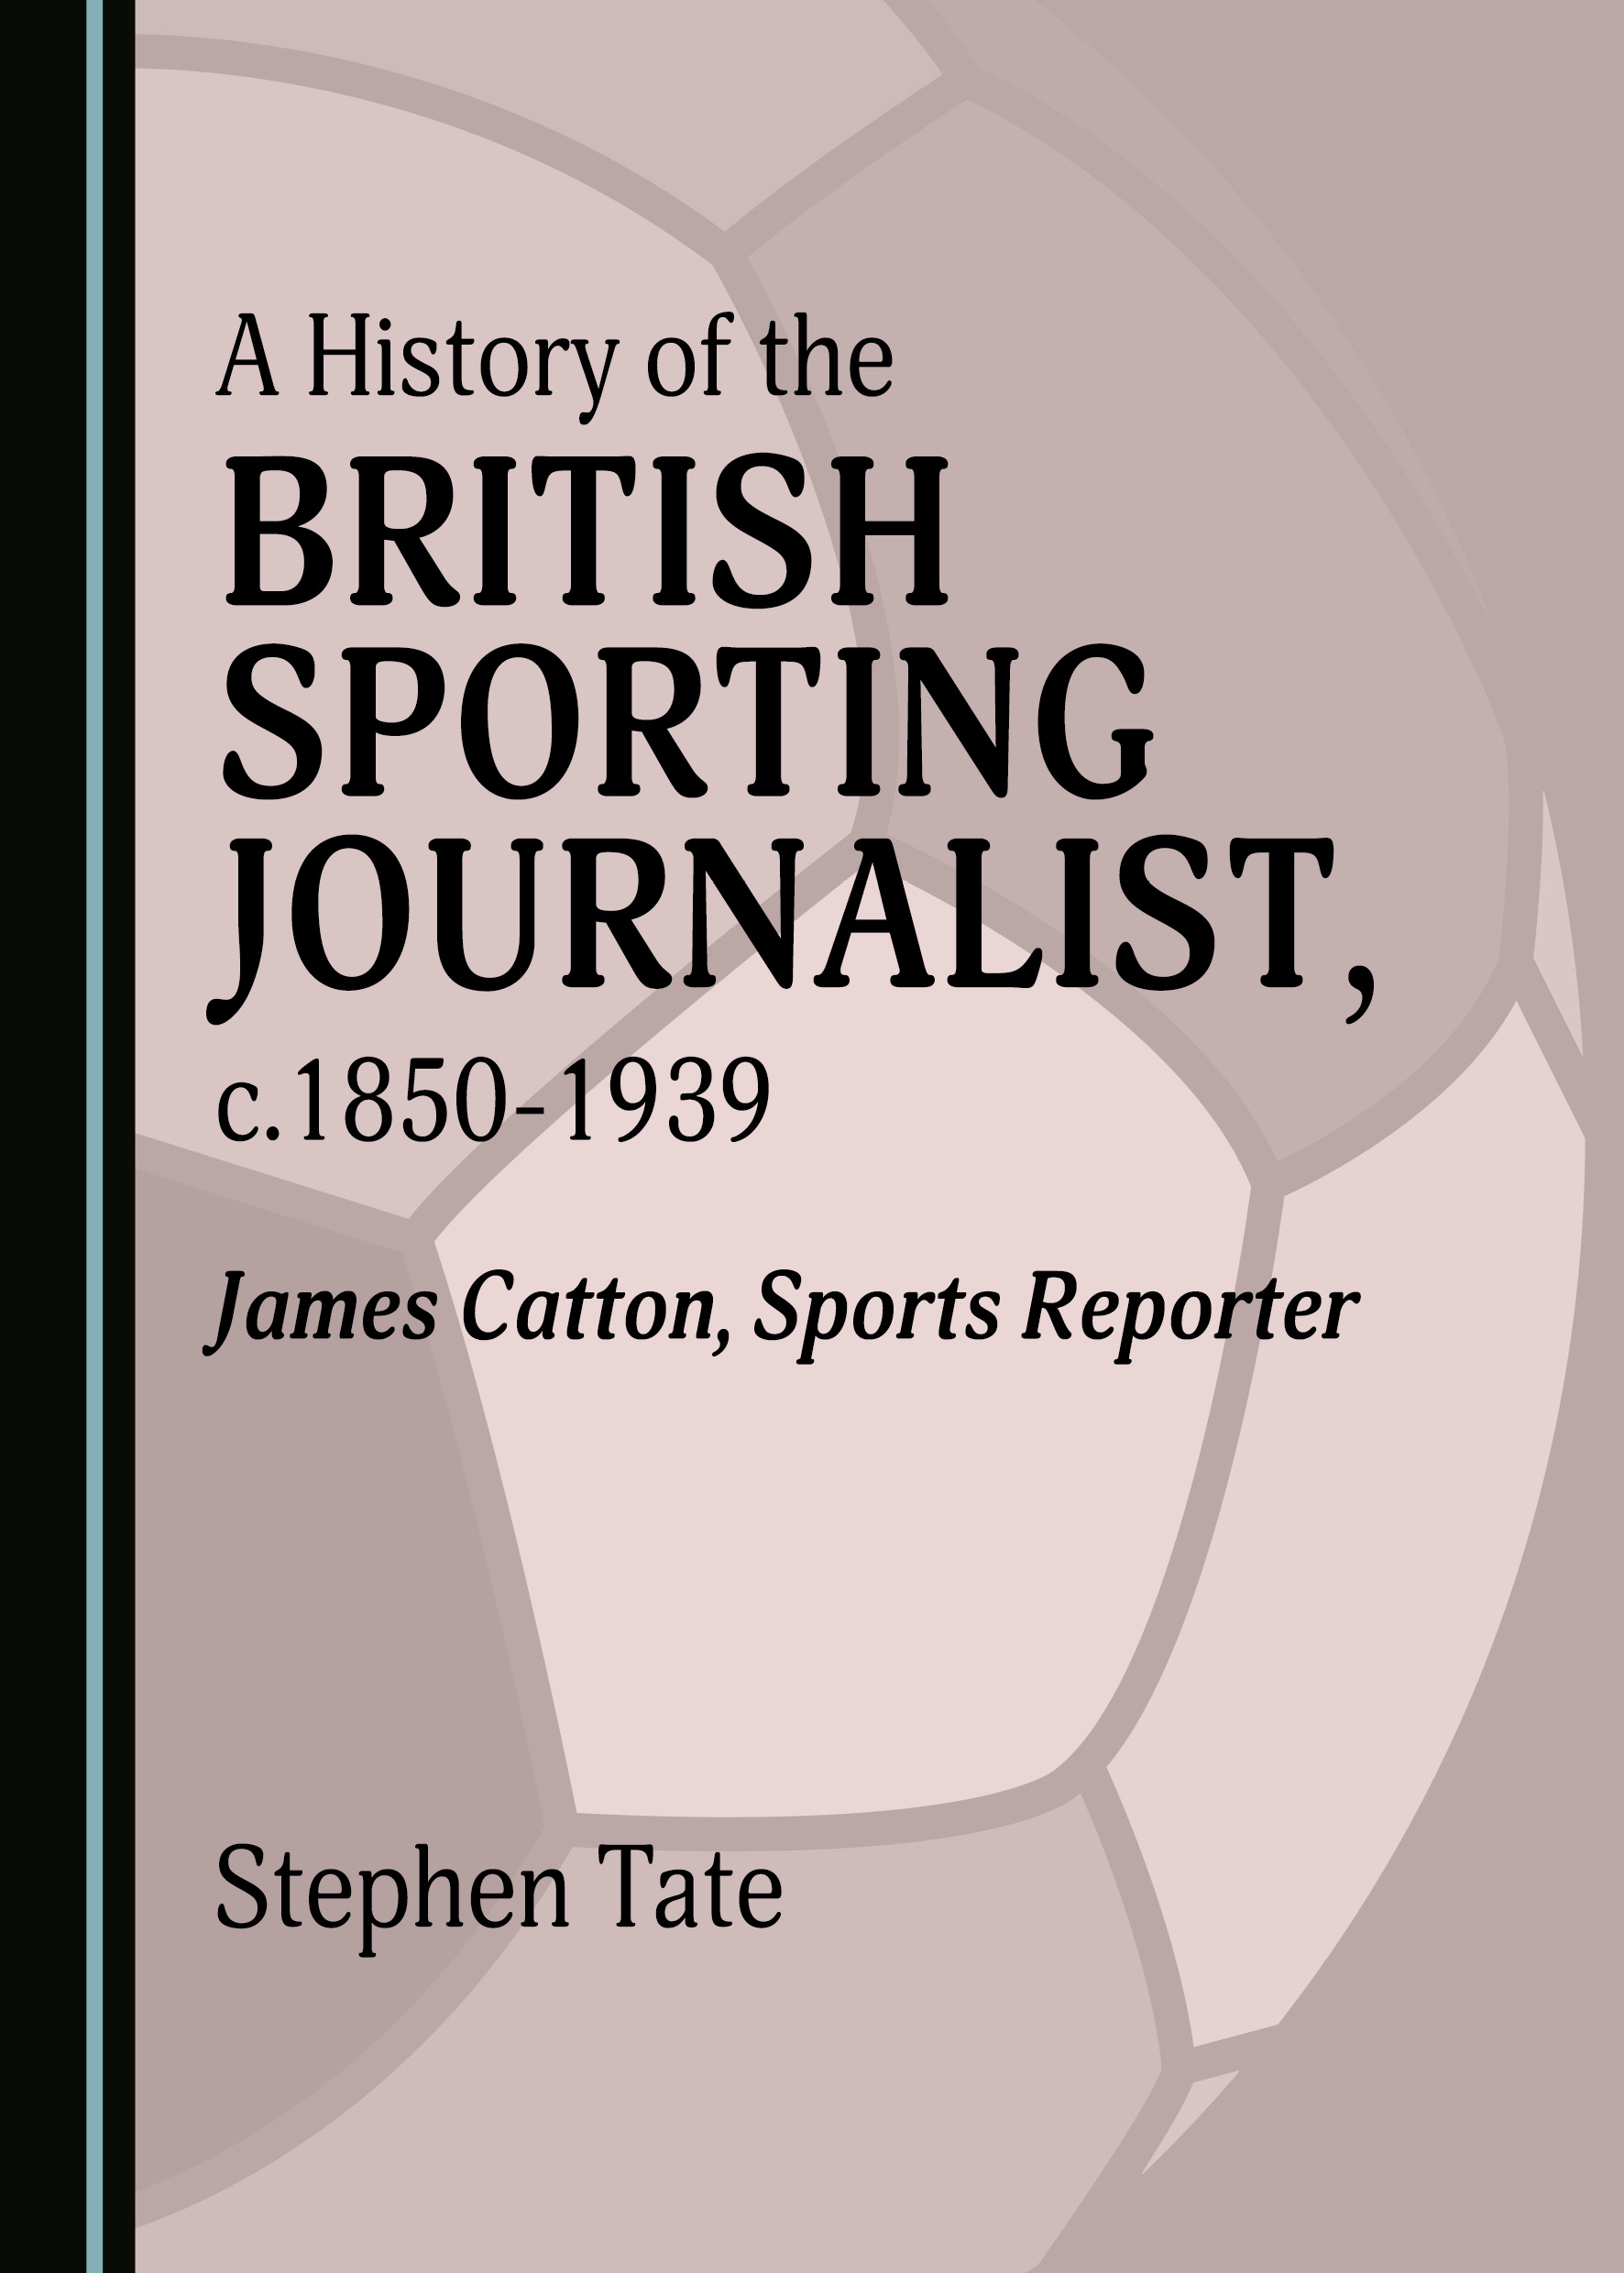 A History of the British Sporting Journalist, c.1850-1939: James Catton, Sports Reporter